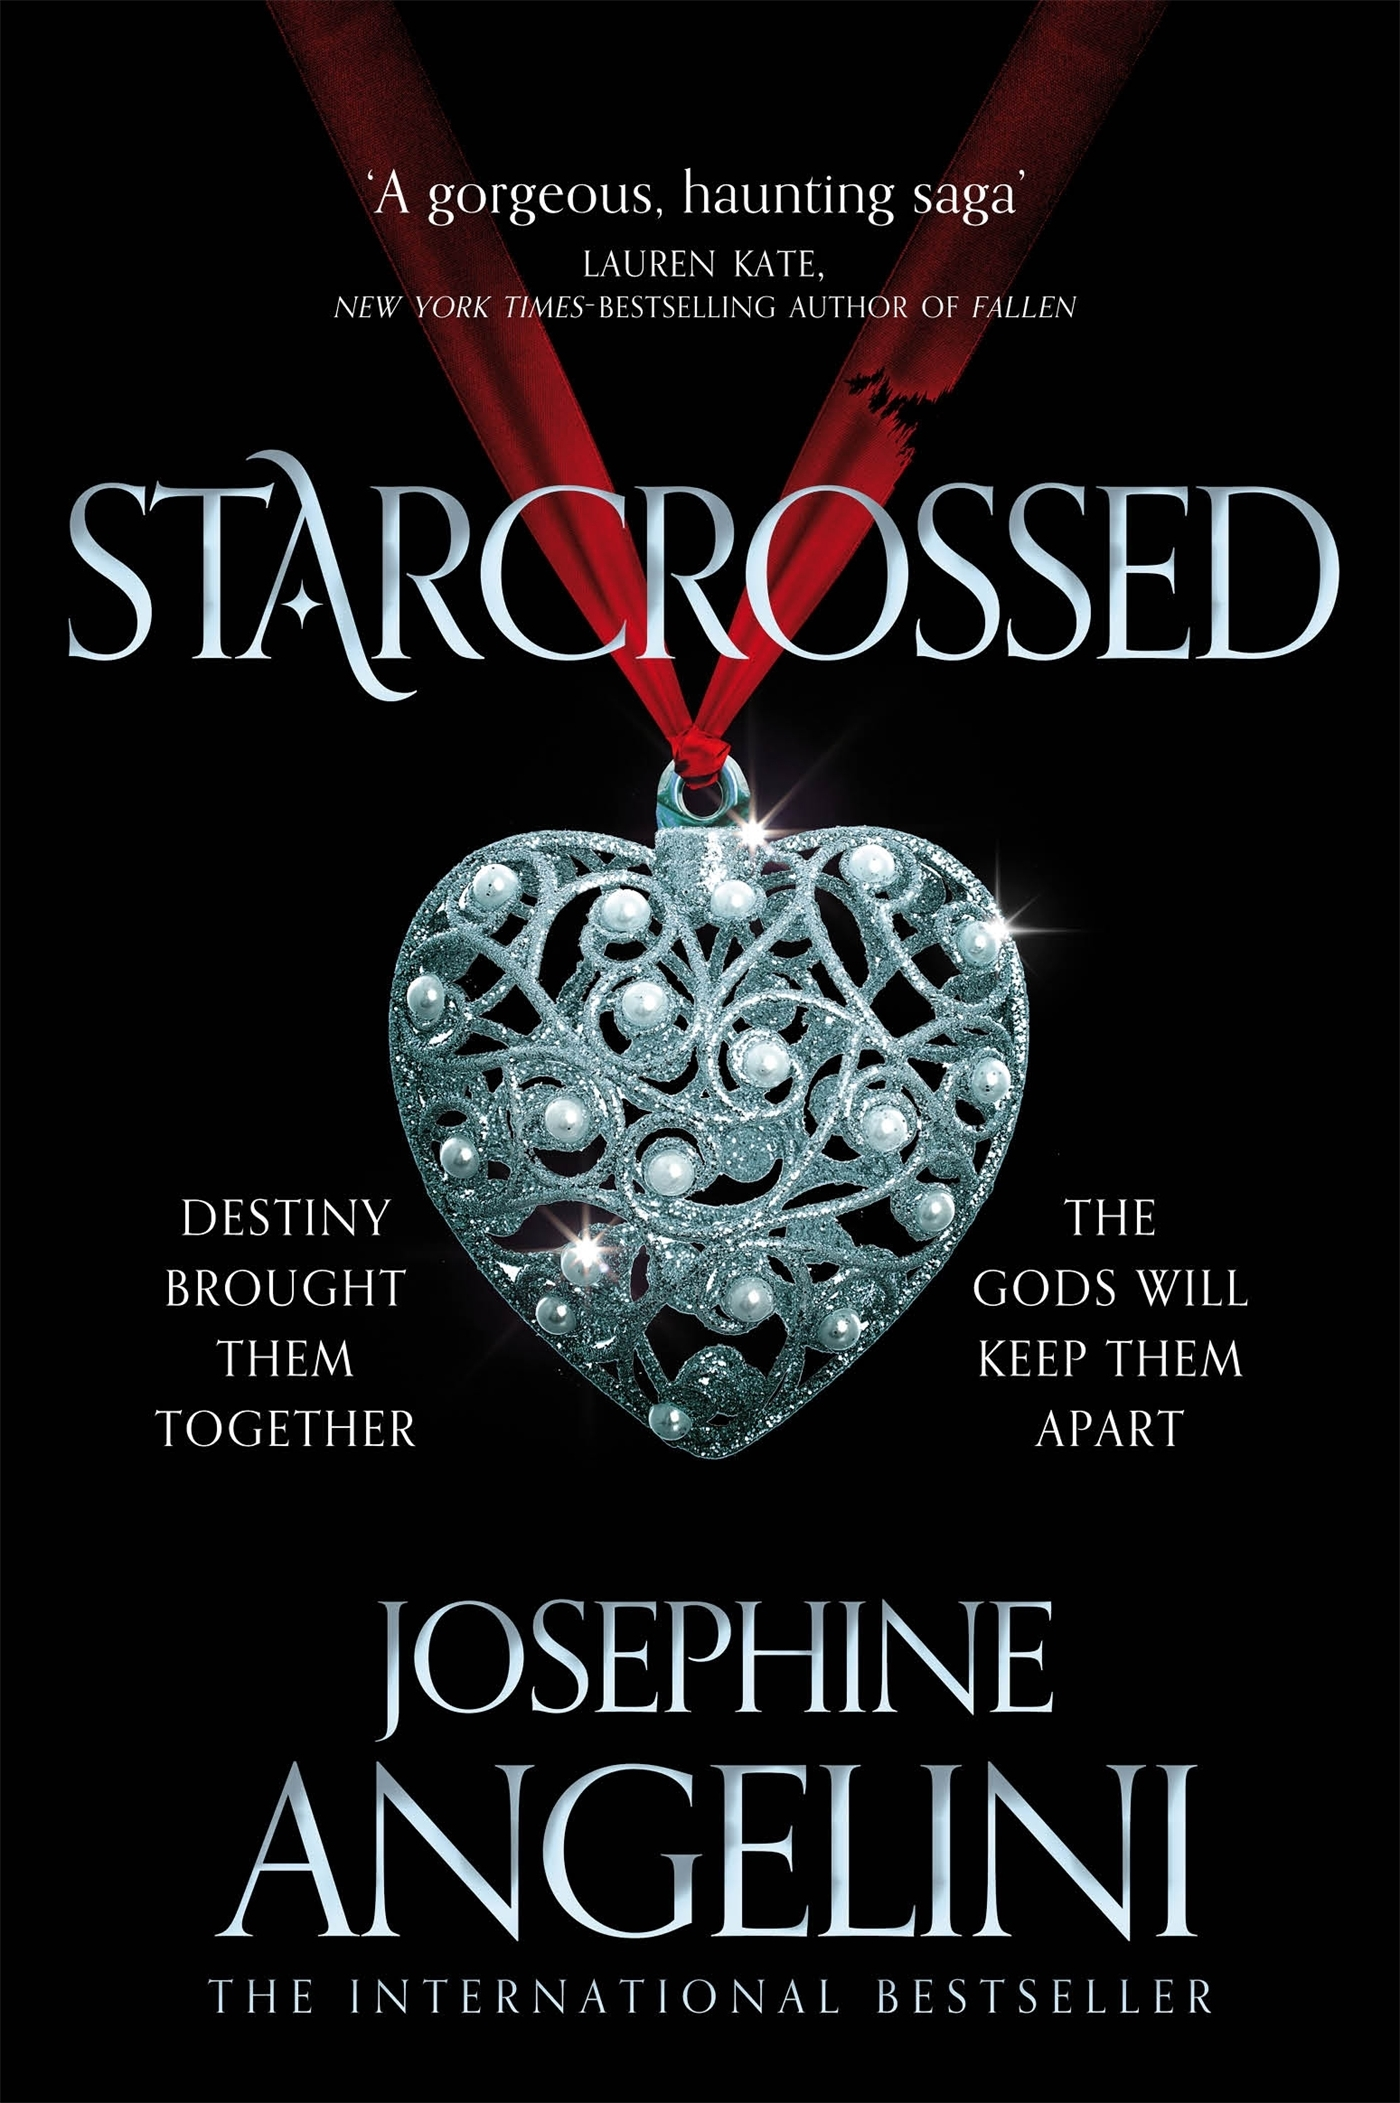 Starcrossed: The Starcrossed Trilogy 1 - Pan Macmillan AU